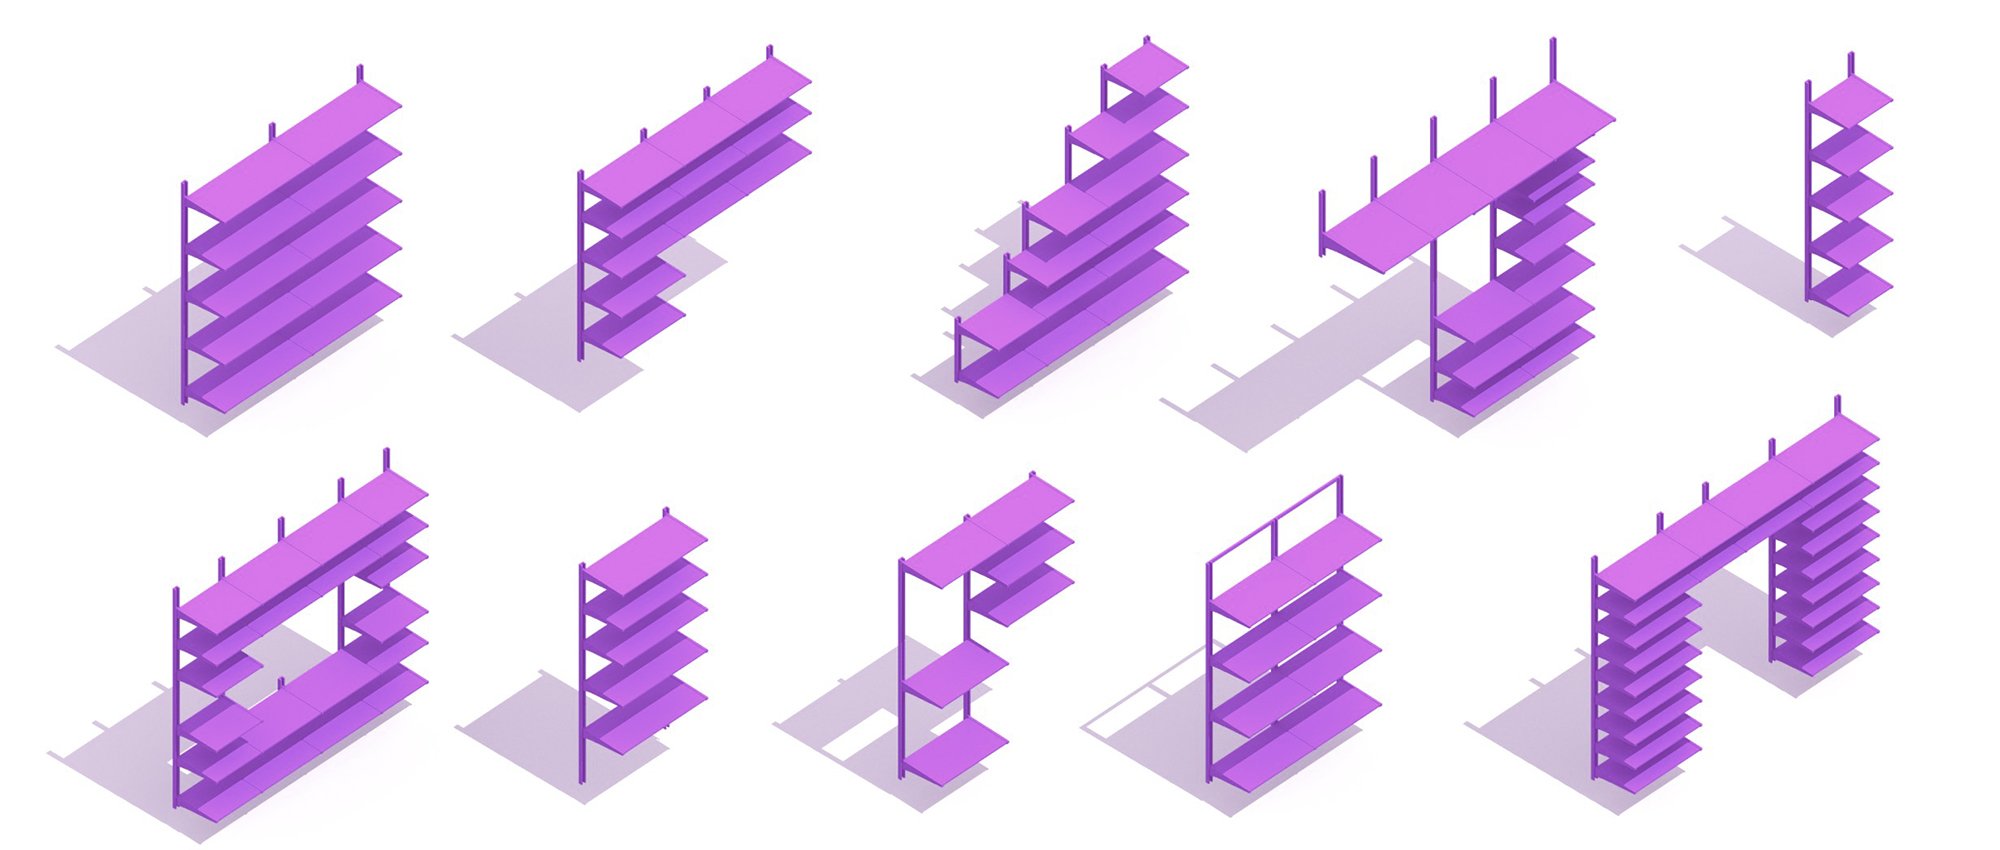 Collection of assorted shelving systems with different widths, heights, and storage configurations seen in 3D perspectives